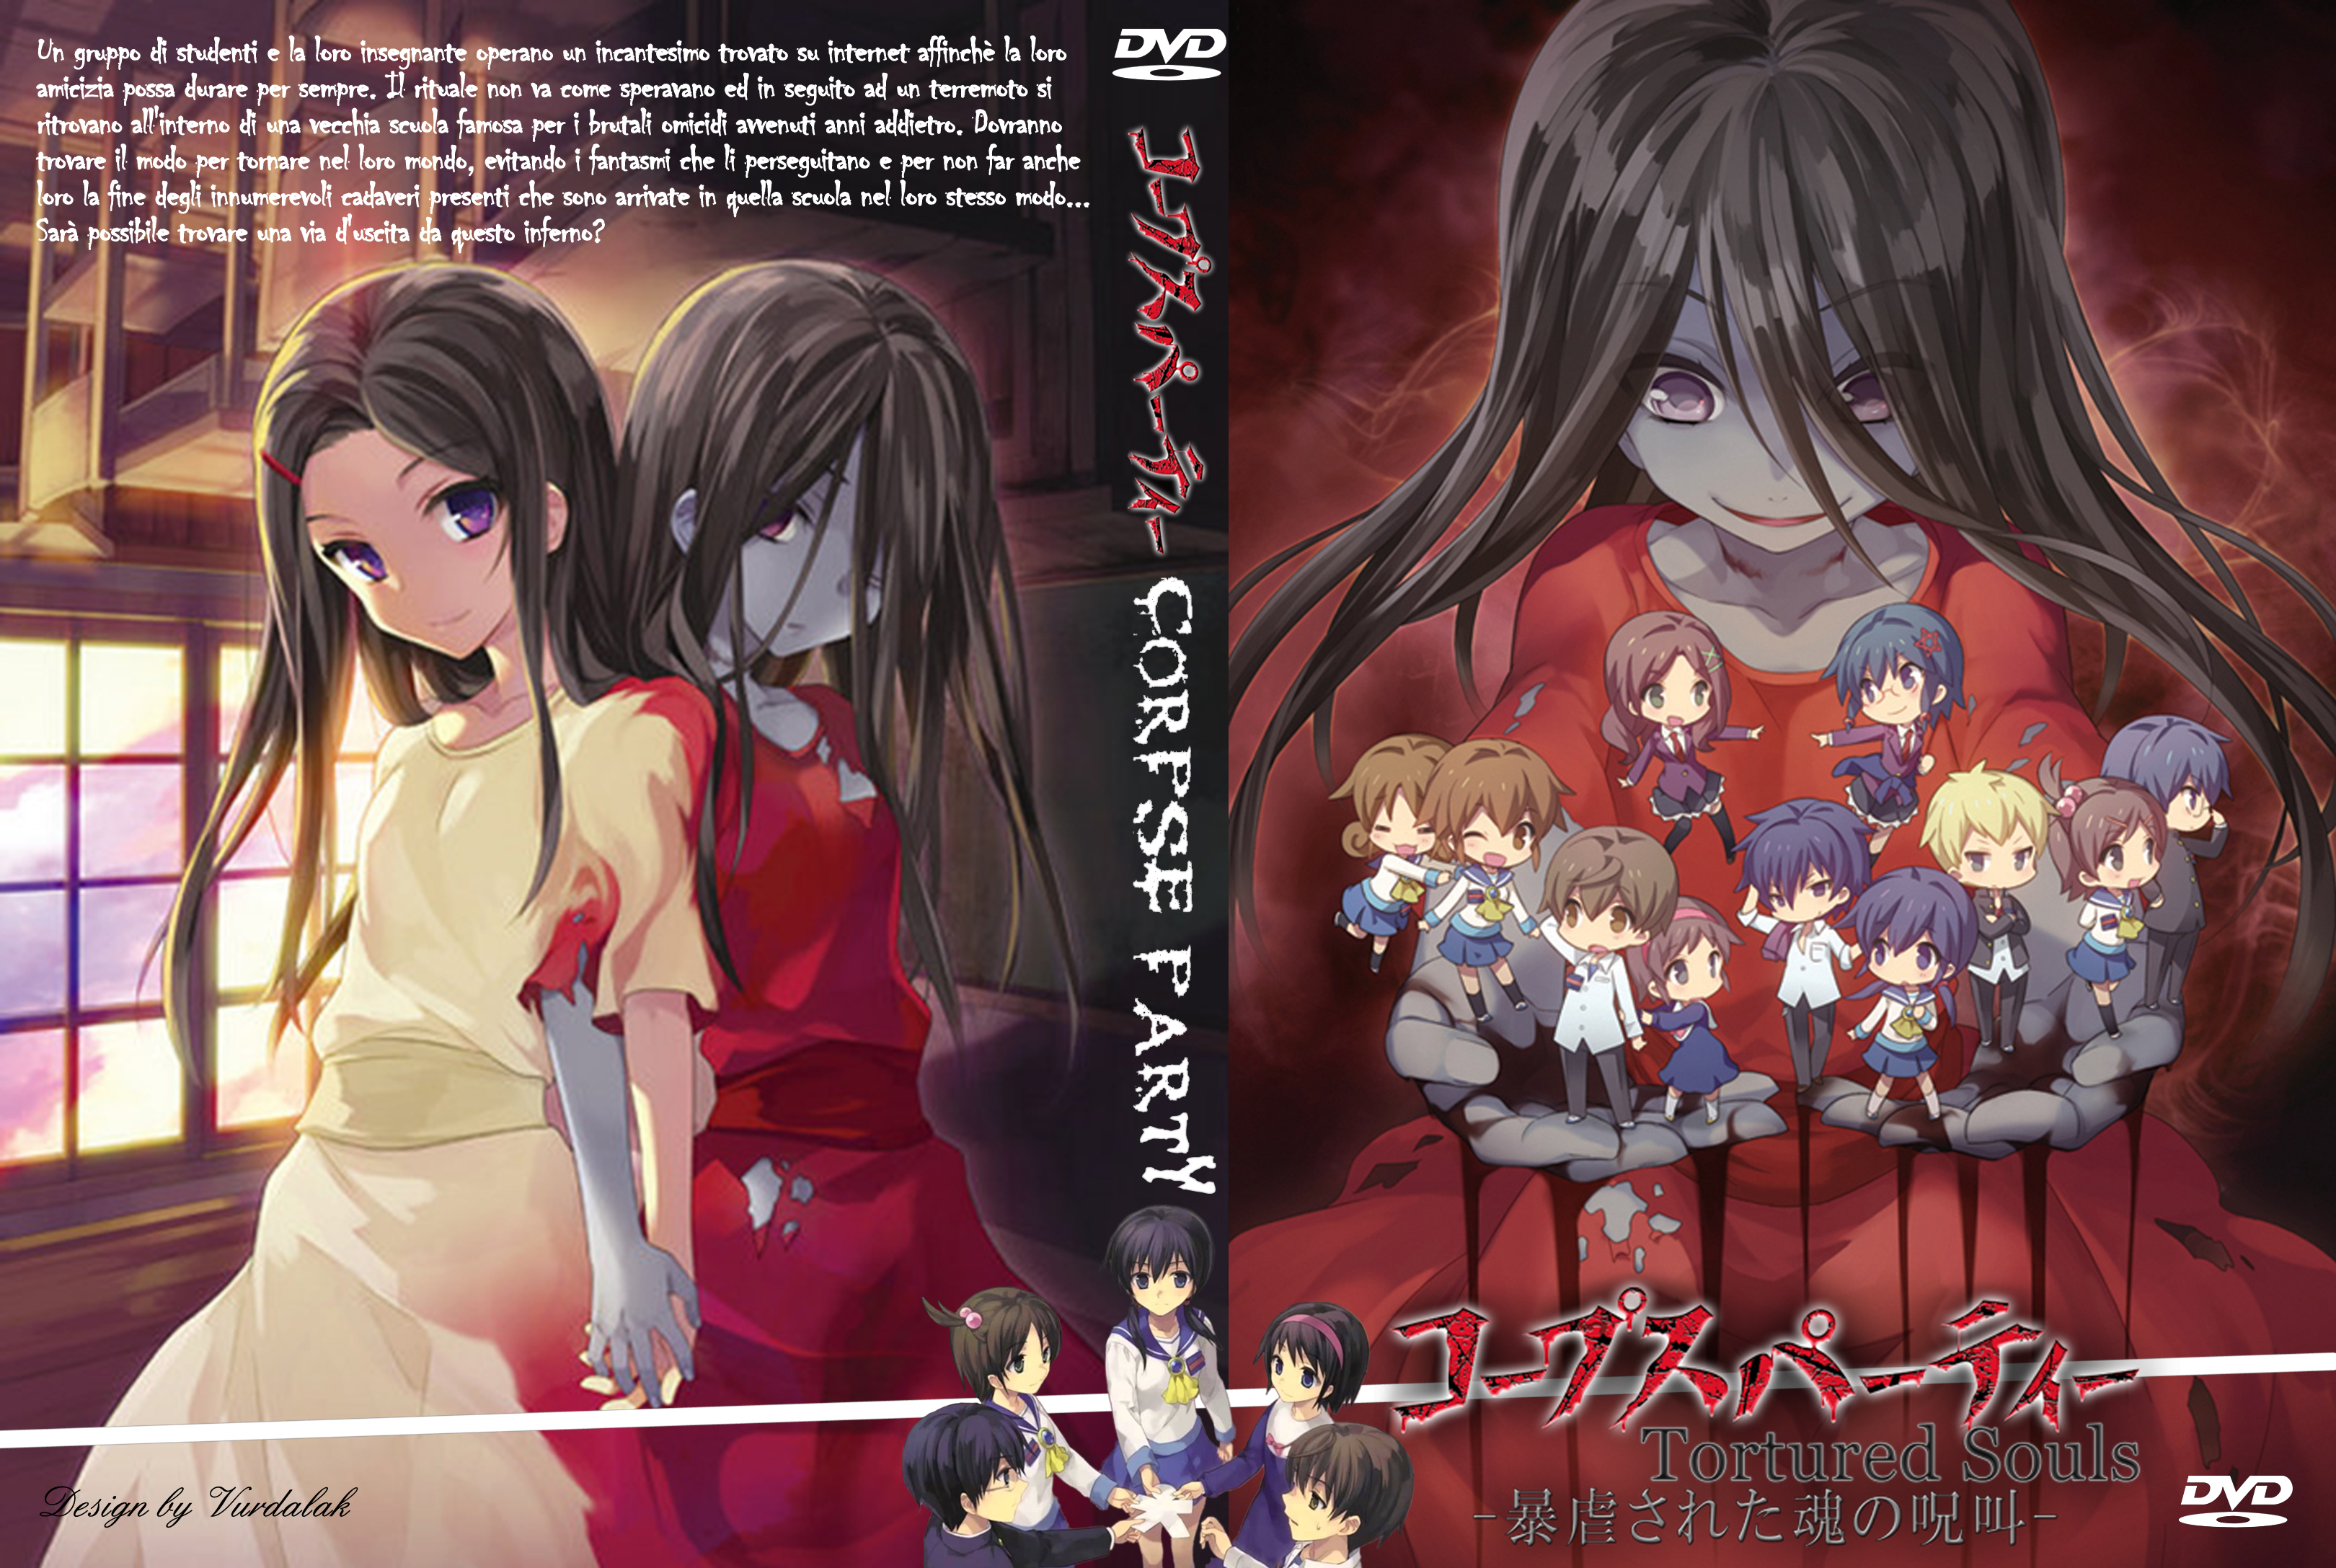 Corpse Party Cover Ita By Vurdalak84 On Deviantart